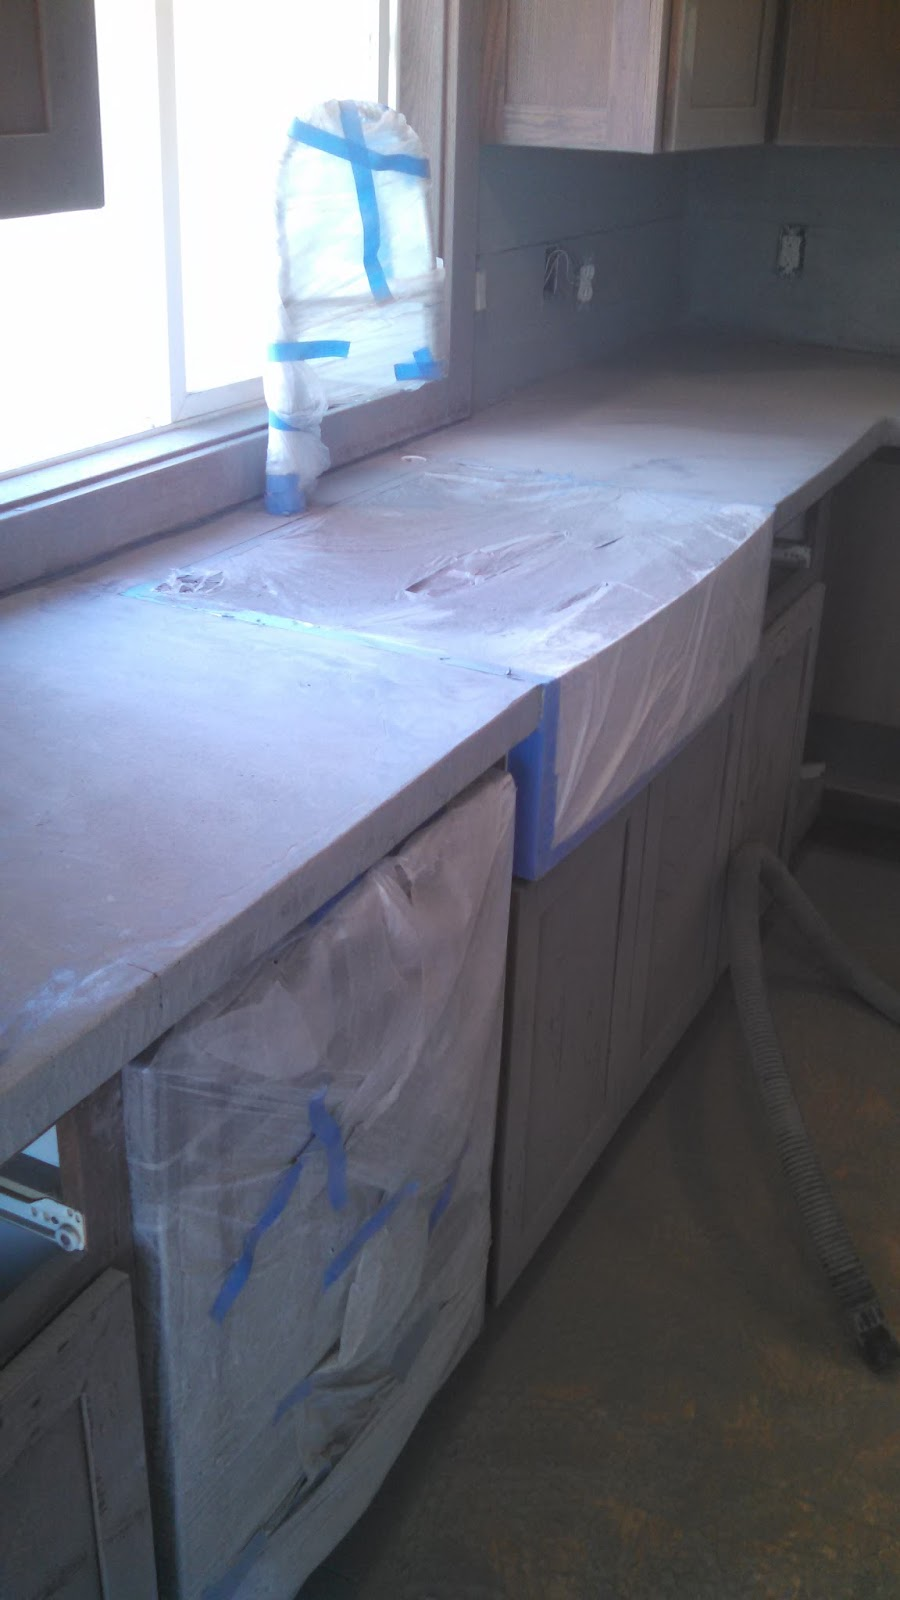 fixing the counters - grinding and polishing